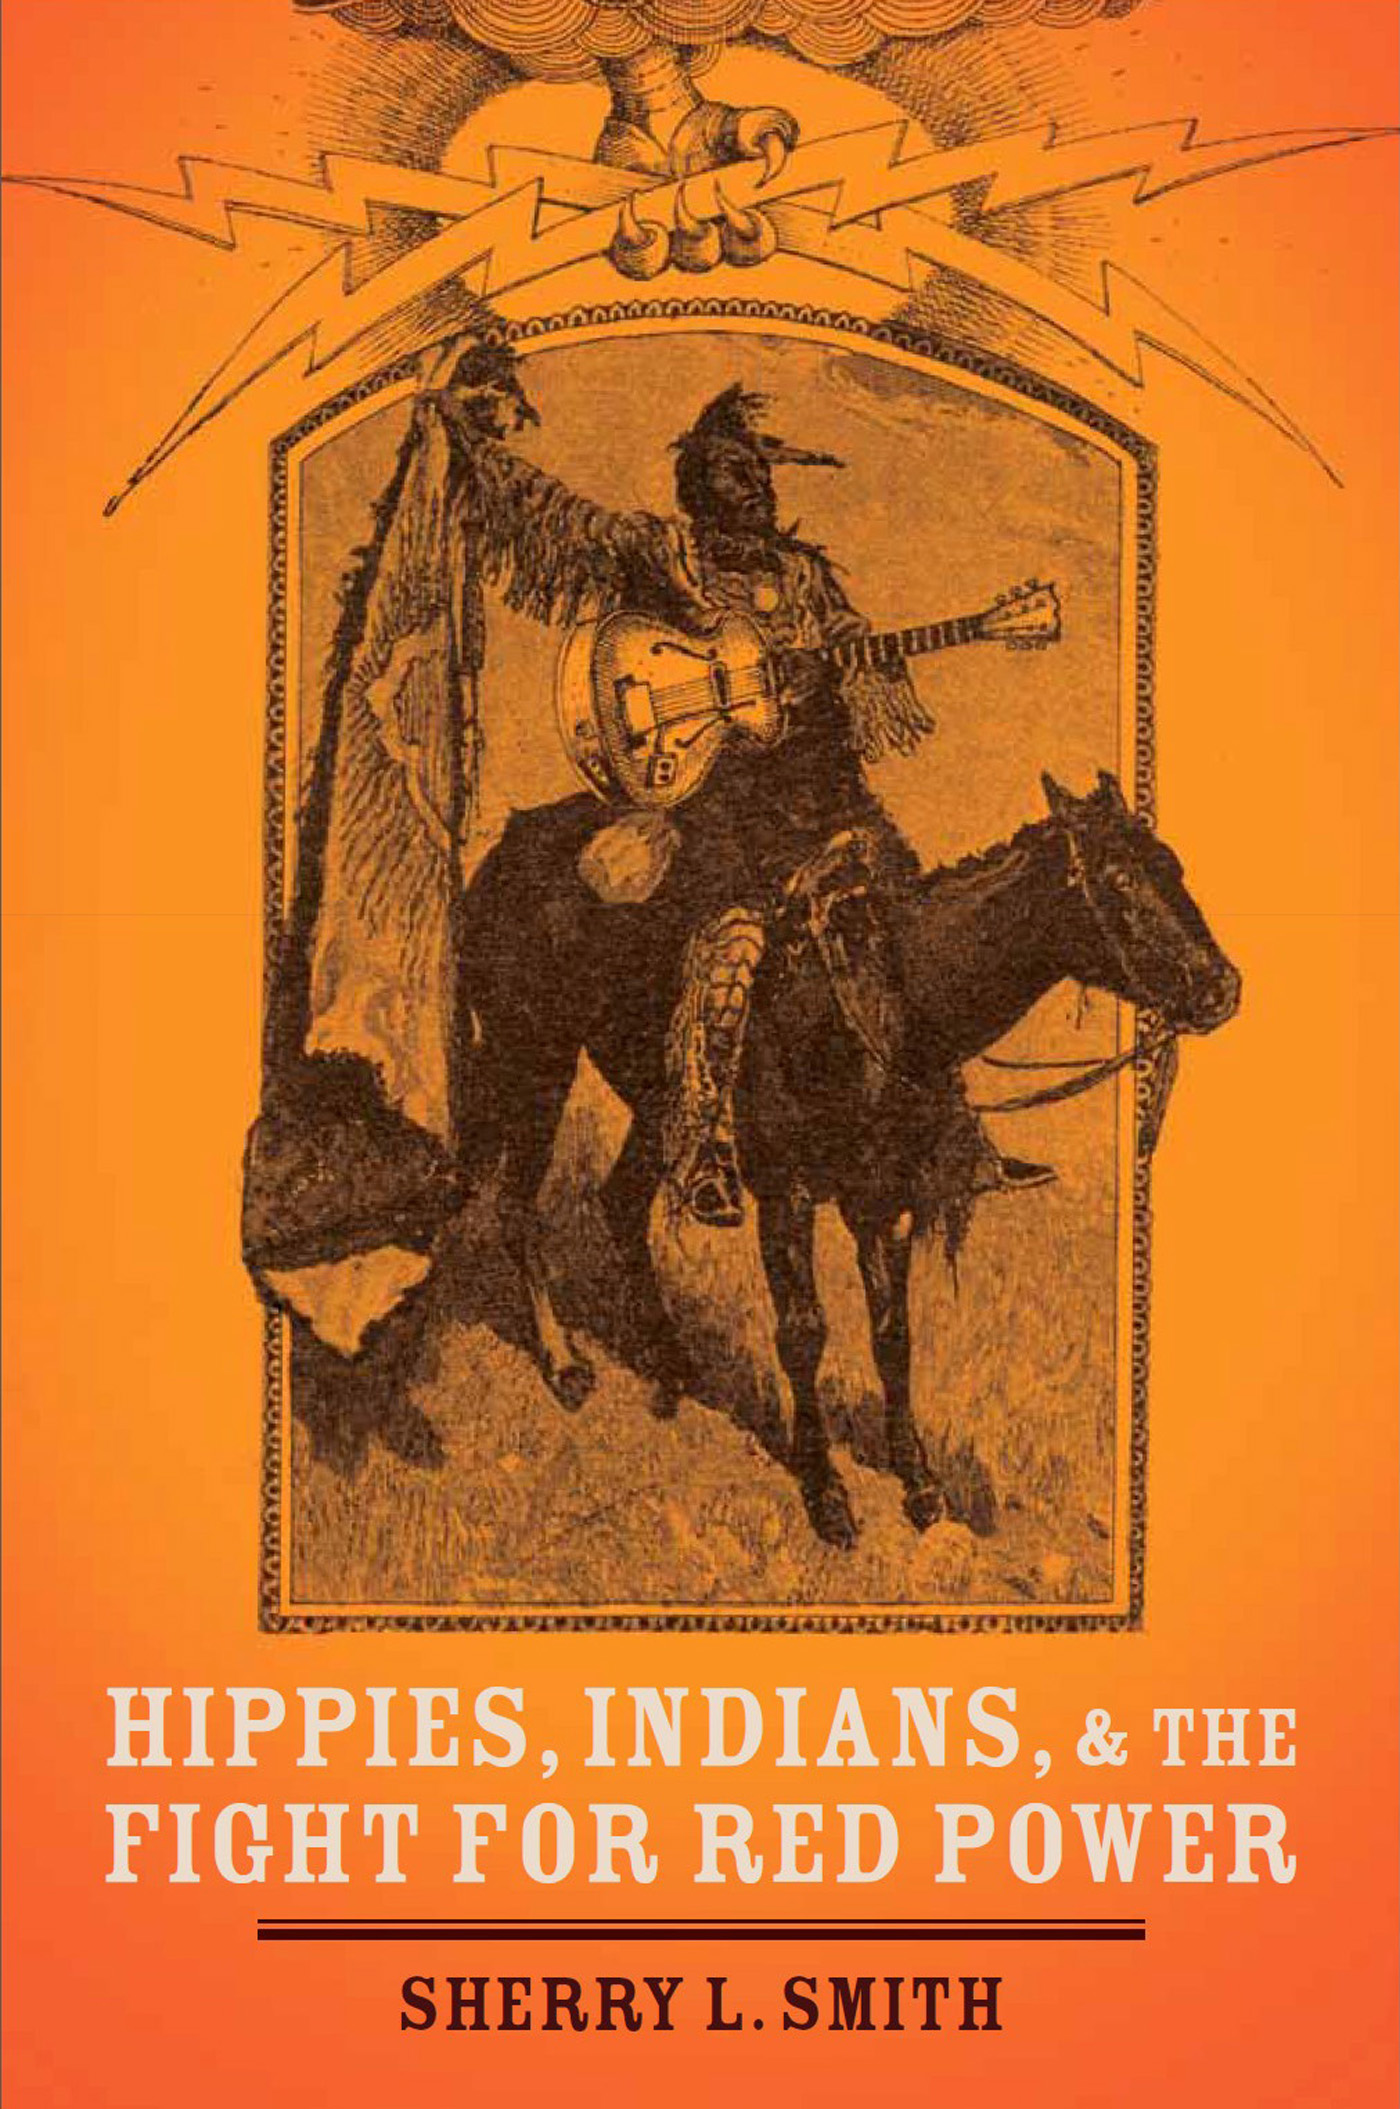 'Hippies, Indians, and the Fight for Red Power' book cover